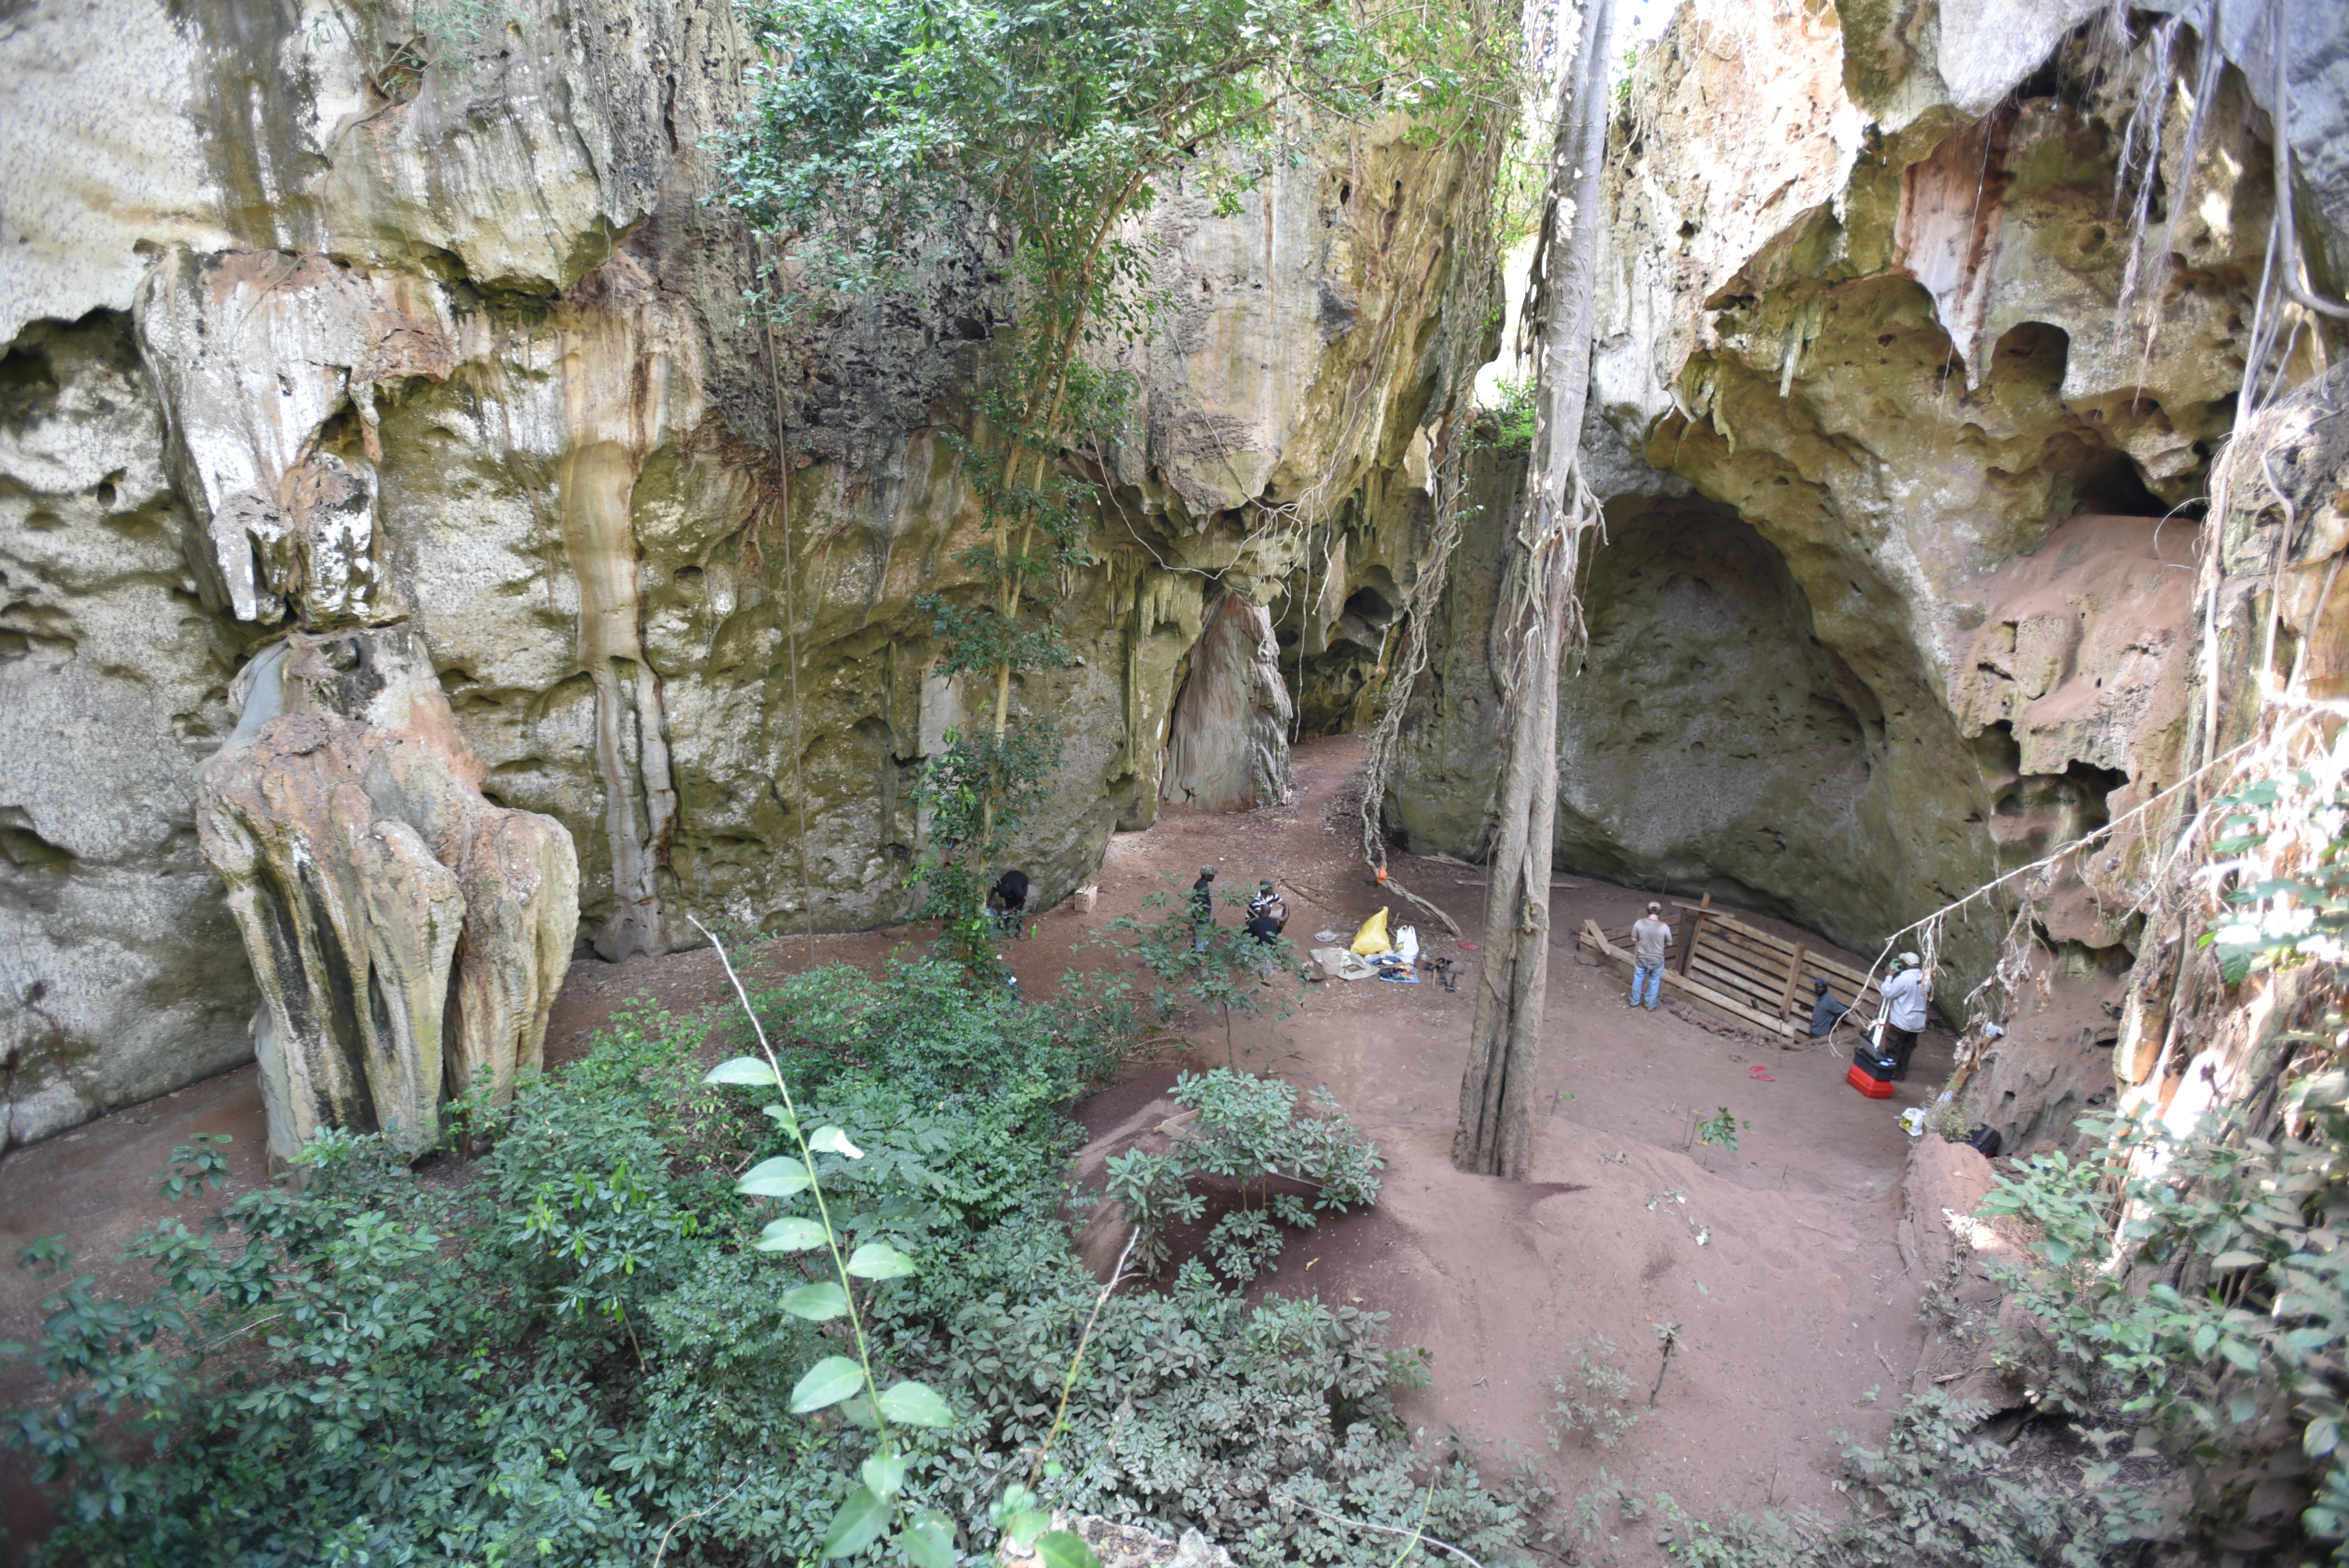 The cave site of Panga ya Saidi, in Kenya's Kilifi County is seen in this undated photograph. The remains of a child, roughly aged 3 who lived about 78,000 years ago, were found in a burial pit at the mouth of the cave, the oldest-known human burial in Africa.   Mohammad Javad Shoaee/Handout via REUTERS